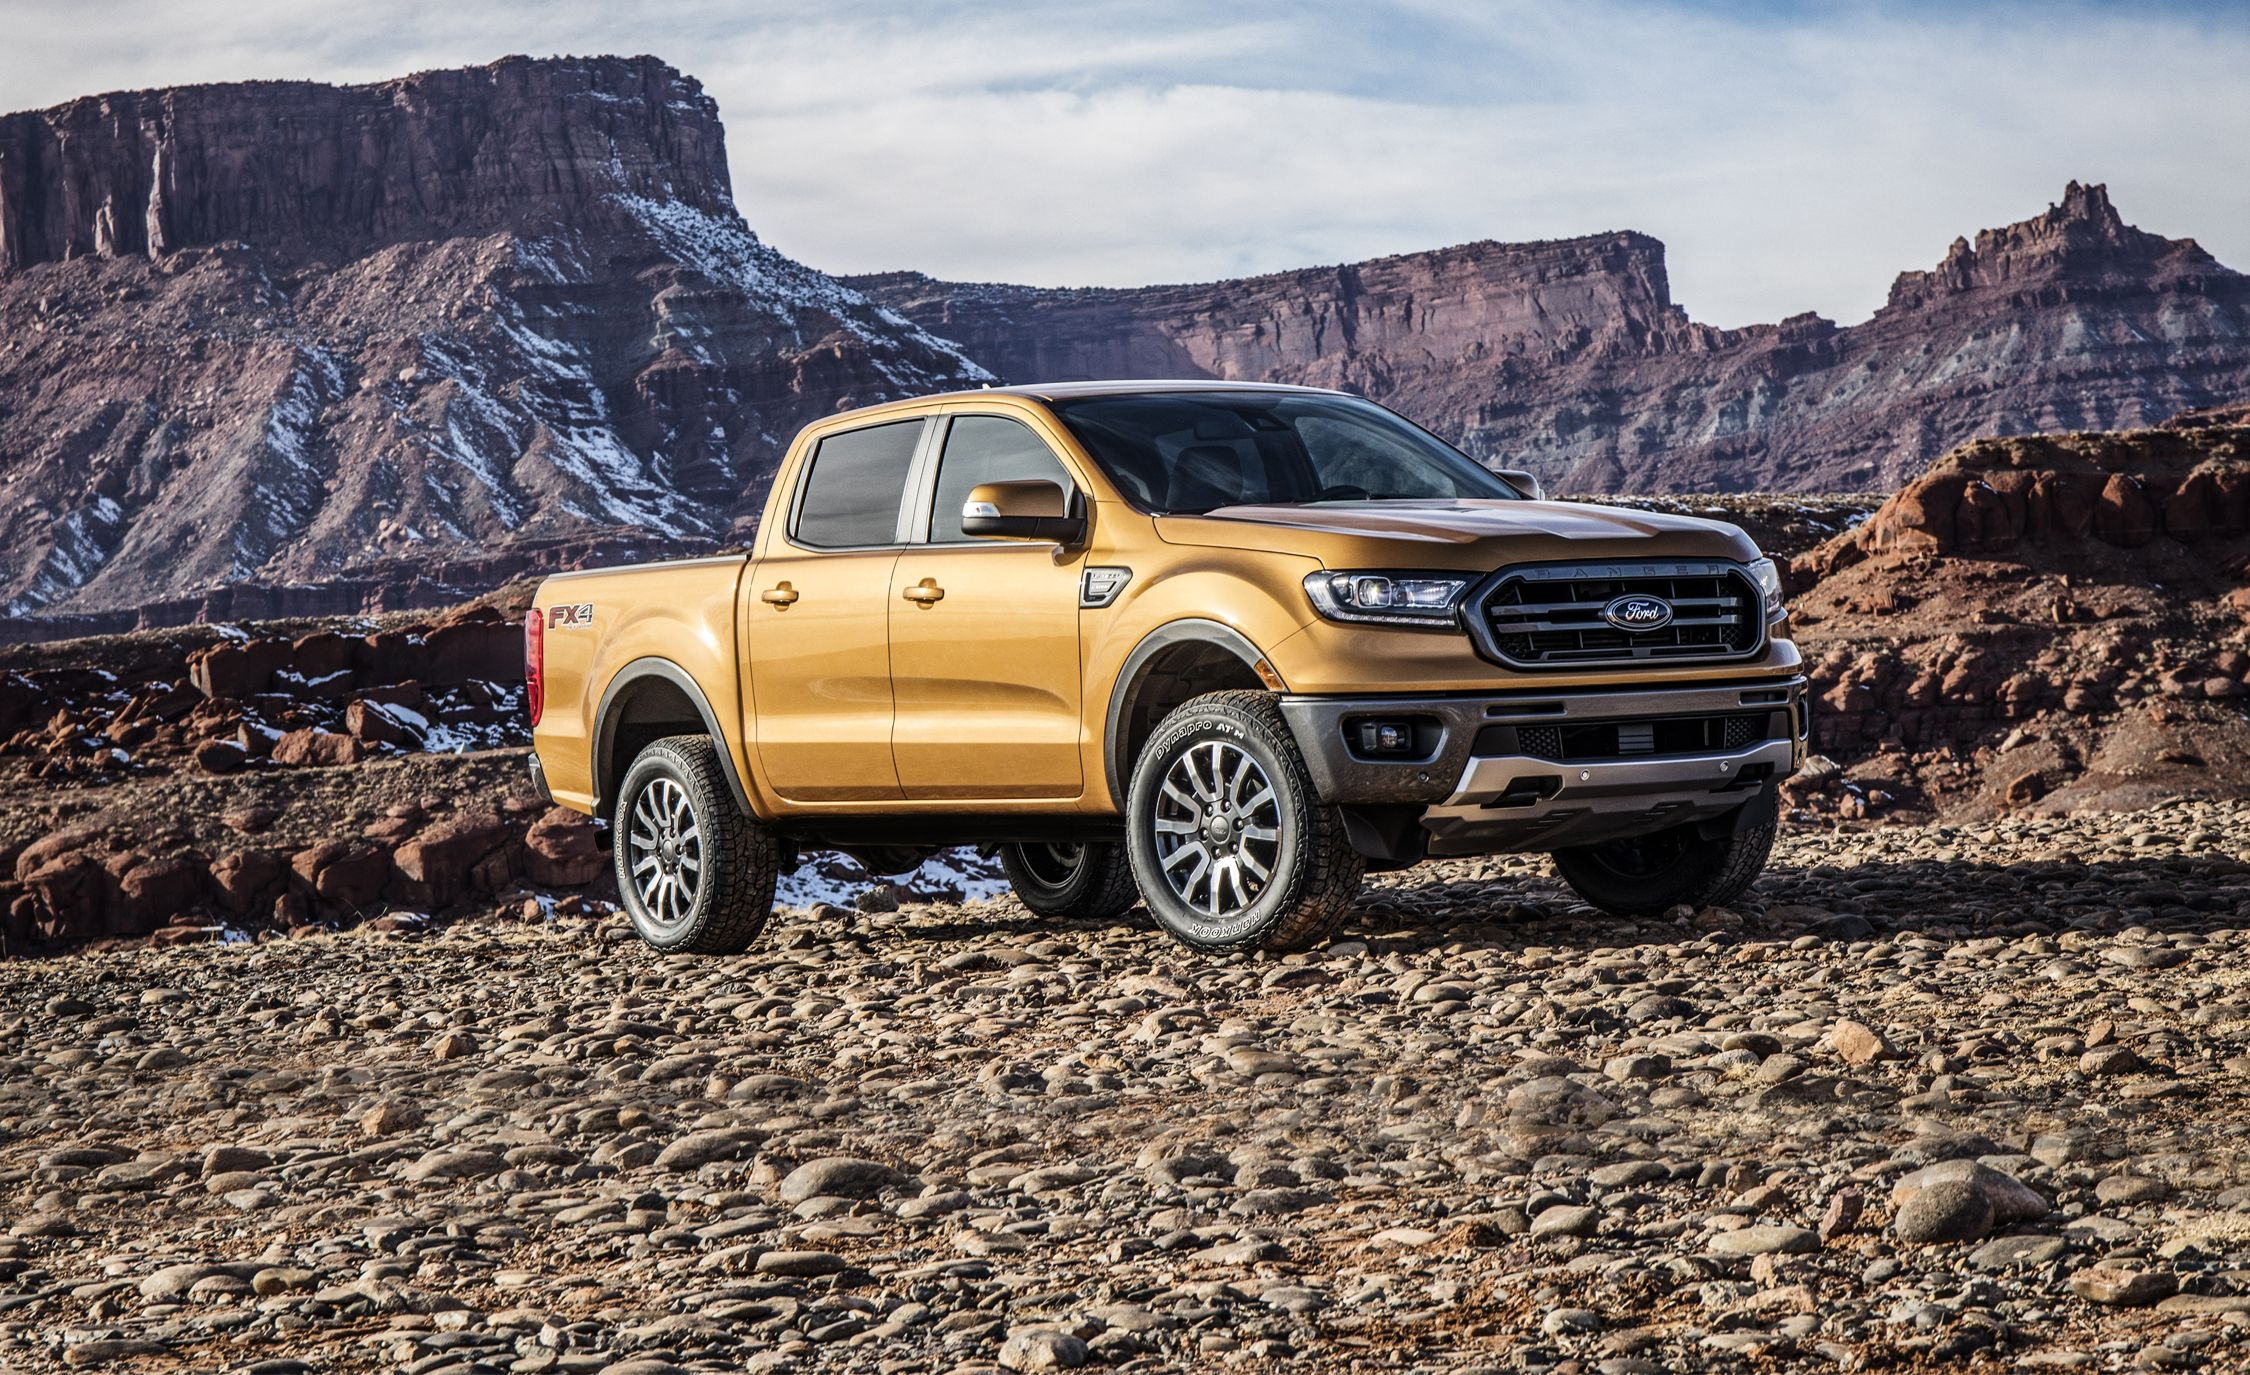 2019 Ford Ranger Mid-Size Pickup Horsepower, Torque, and Towing Revealed